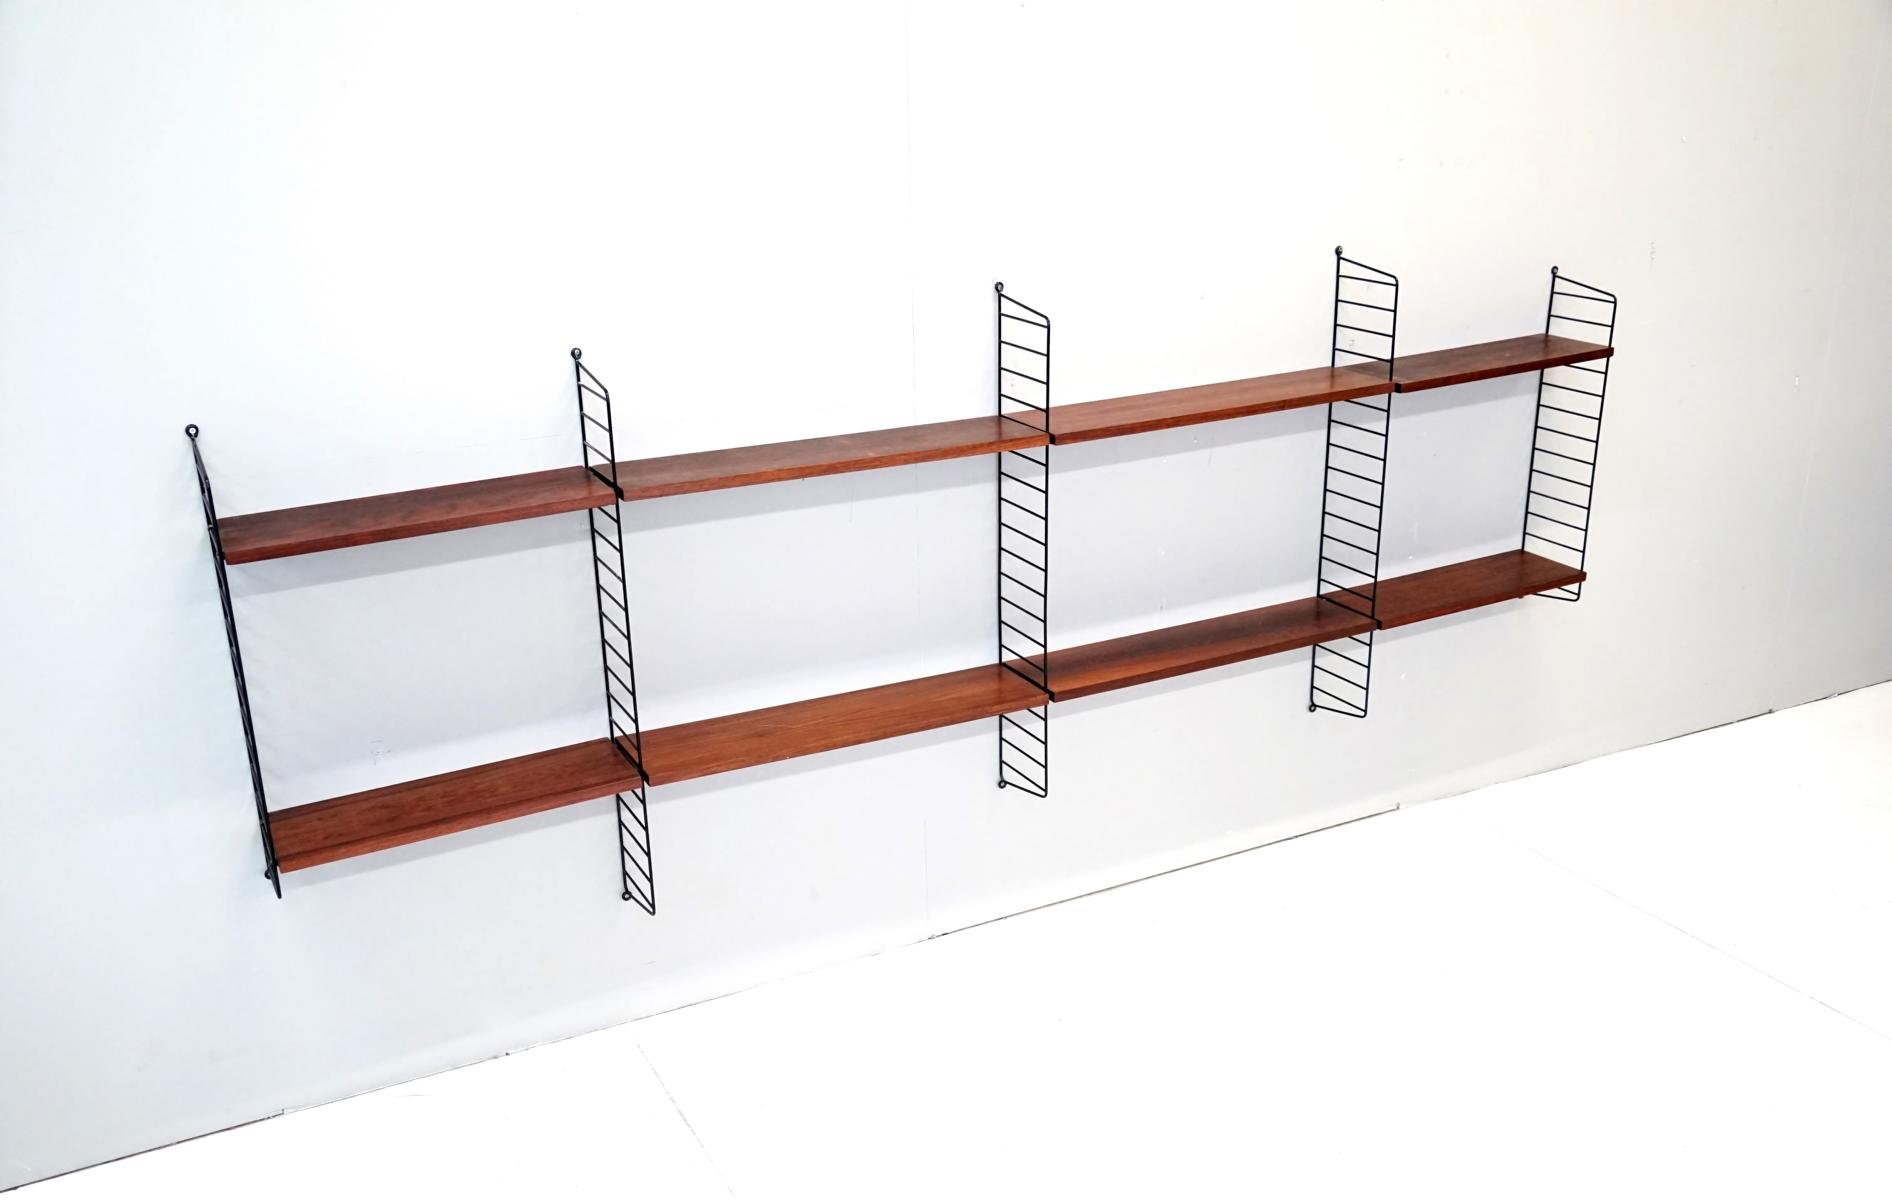 gb spr upright products systems shelves shelf algot storage ikea en cm white drying wall furniture rack